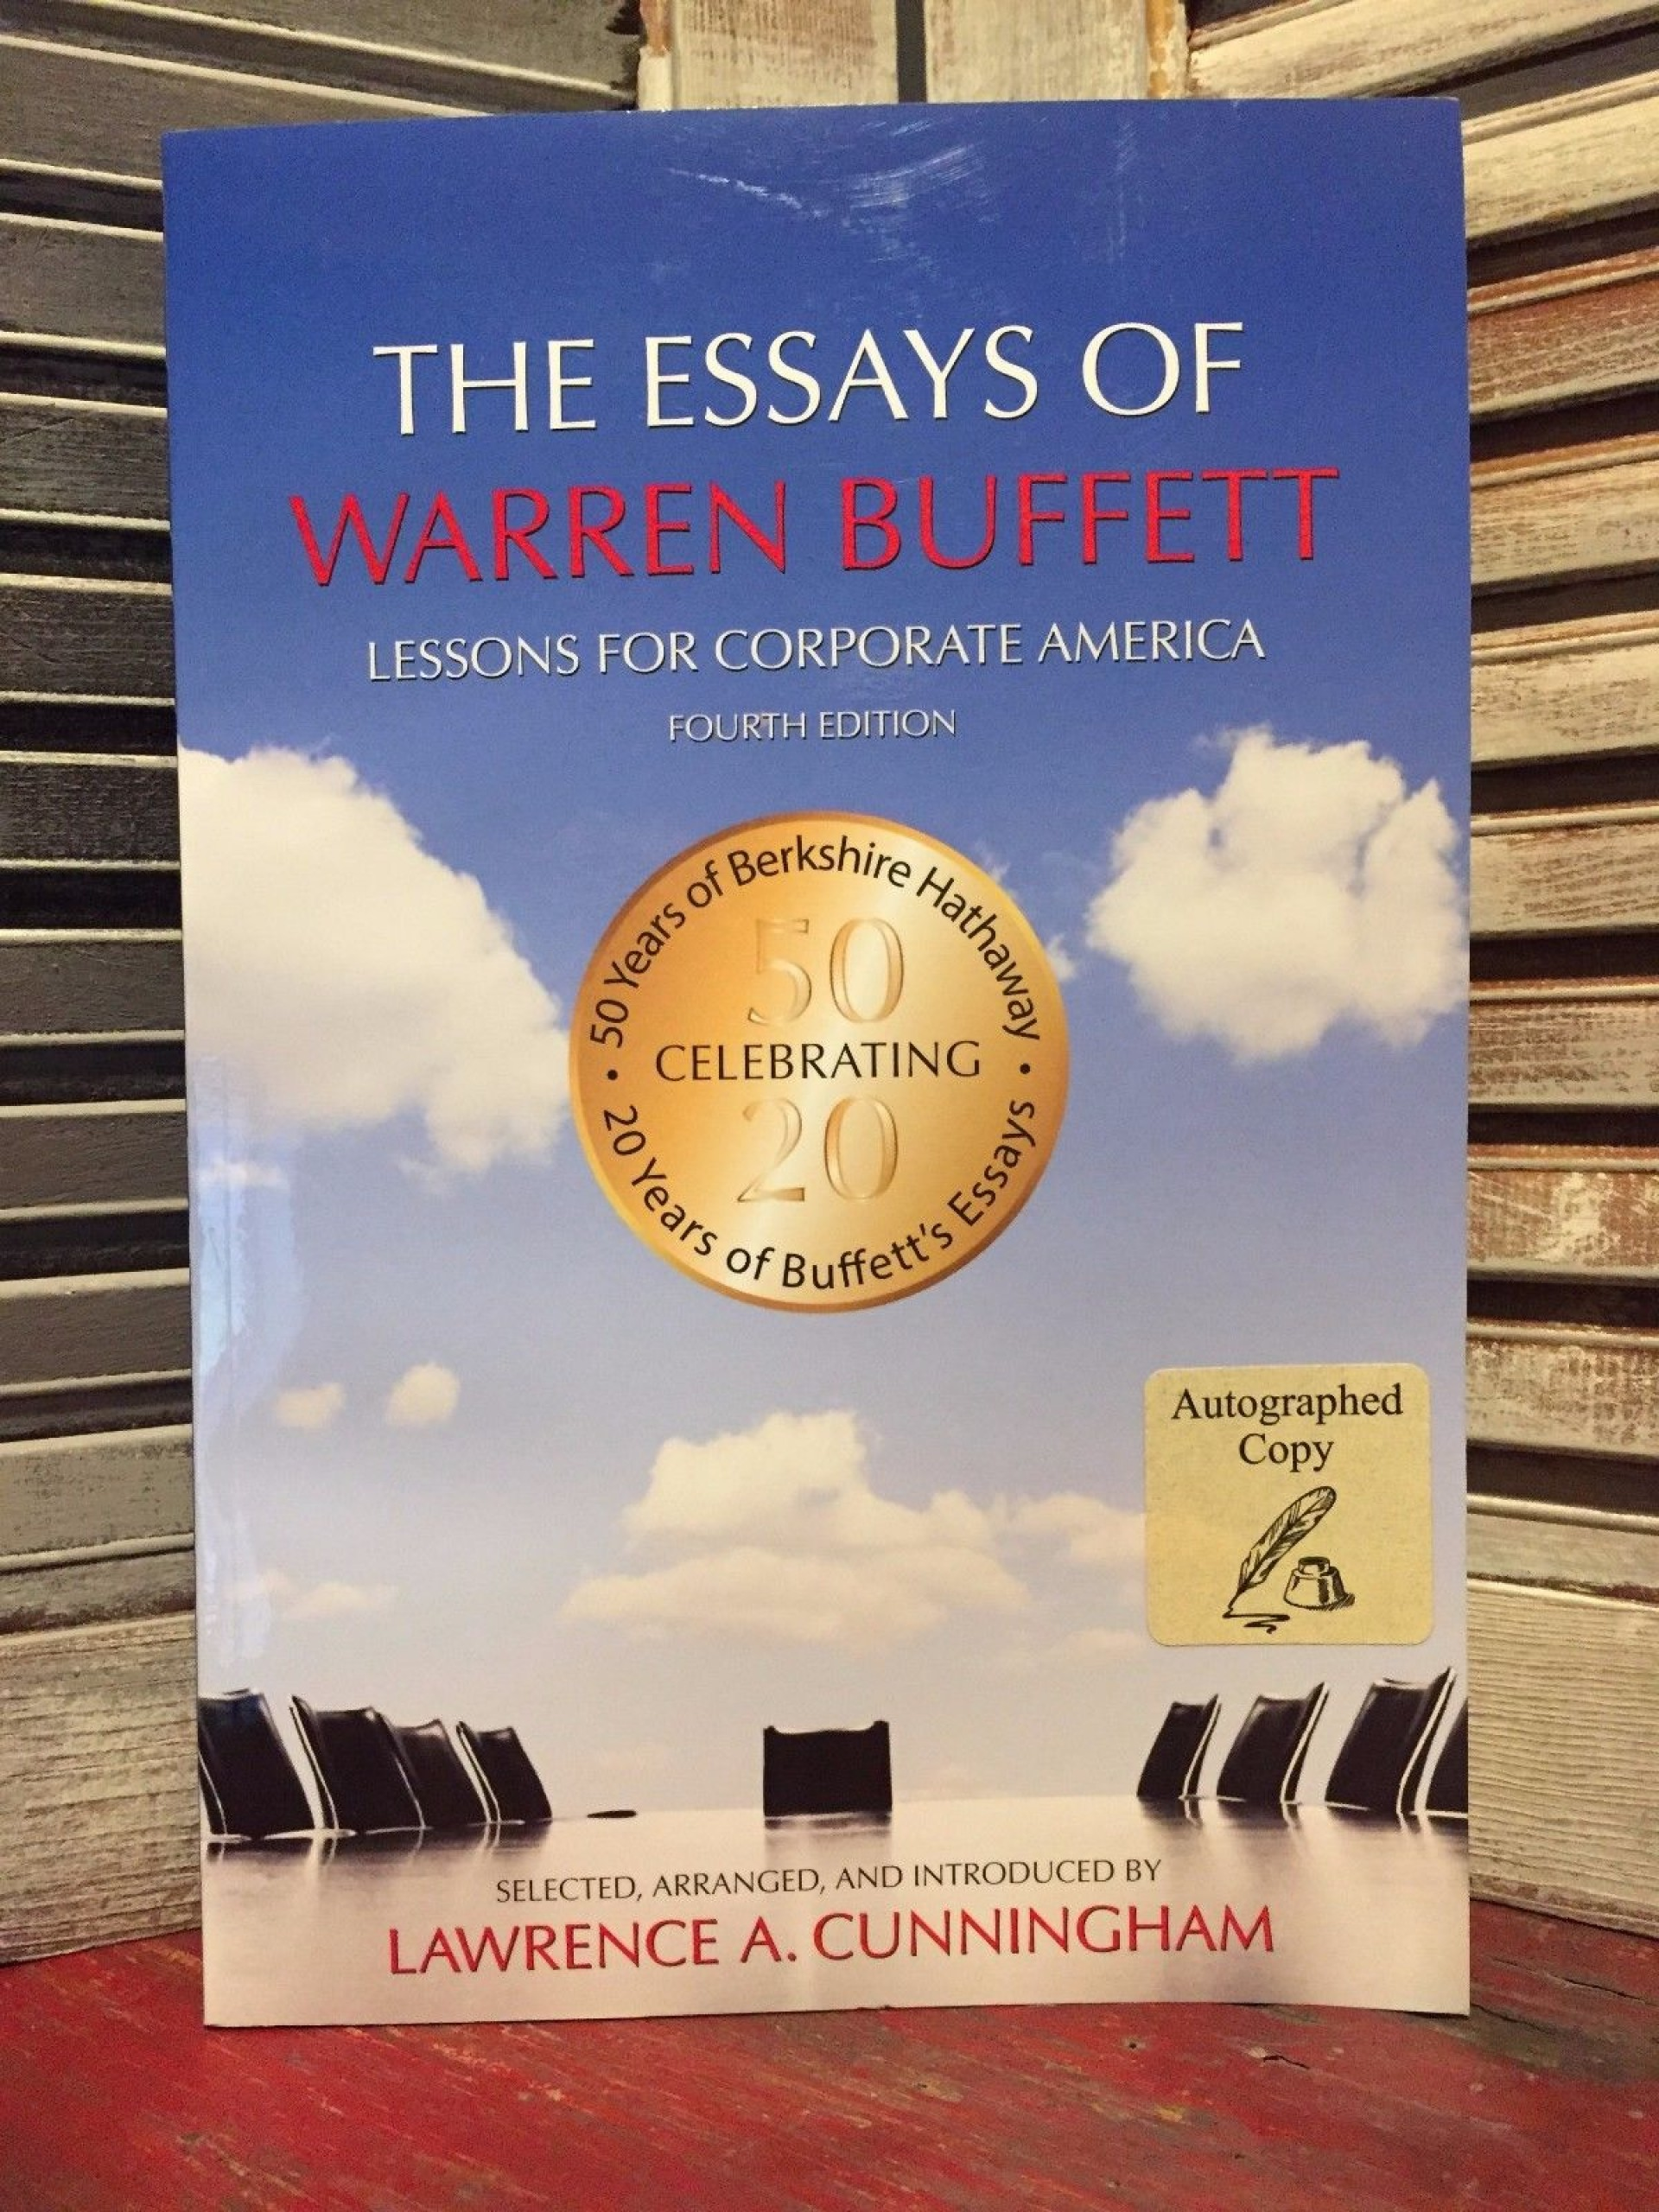 009 The Essays Of Warren Buffett Lessons For Corporate America Essay Example S Remarkable Third Edition 3rd Second Pdf Audio Book 1920